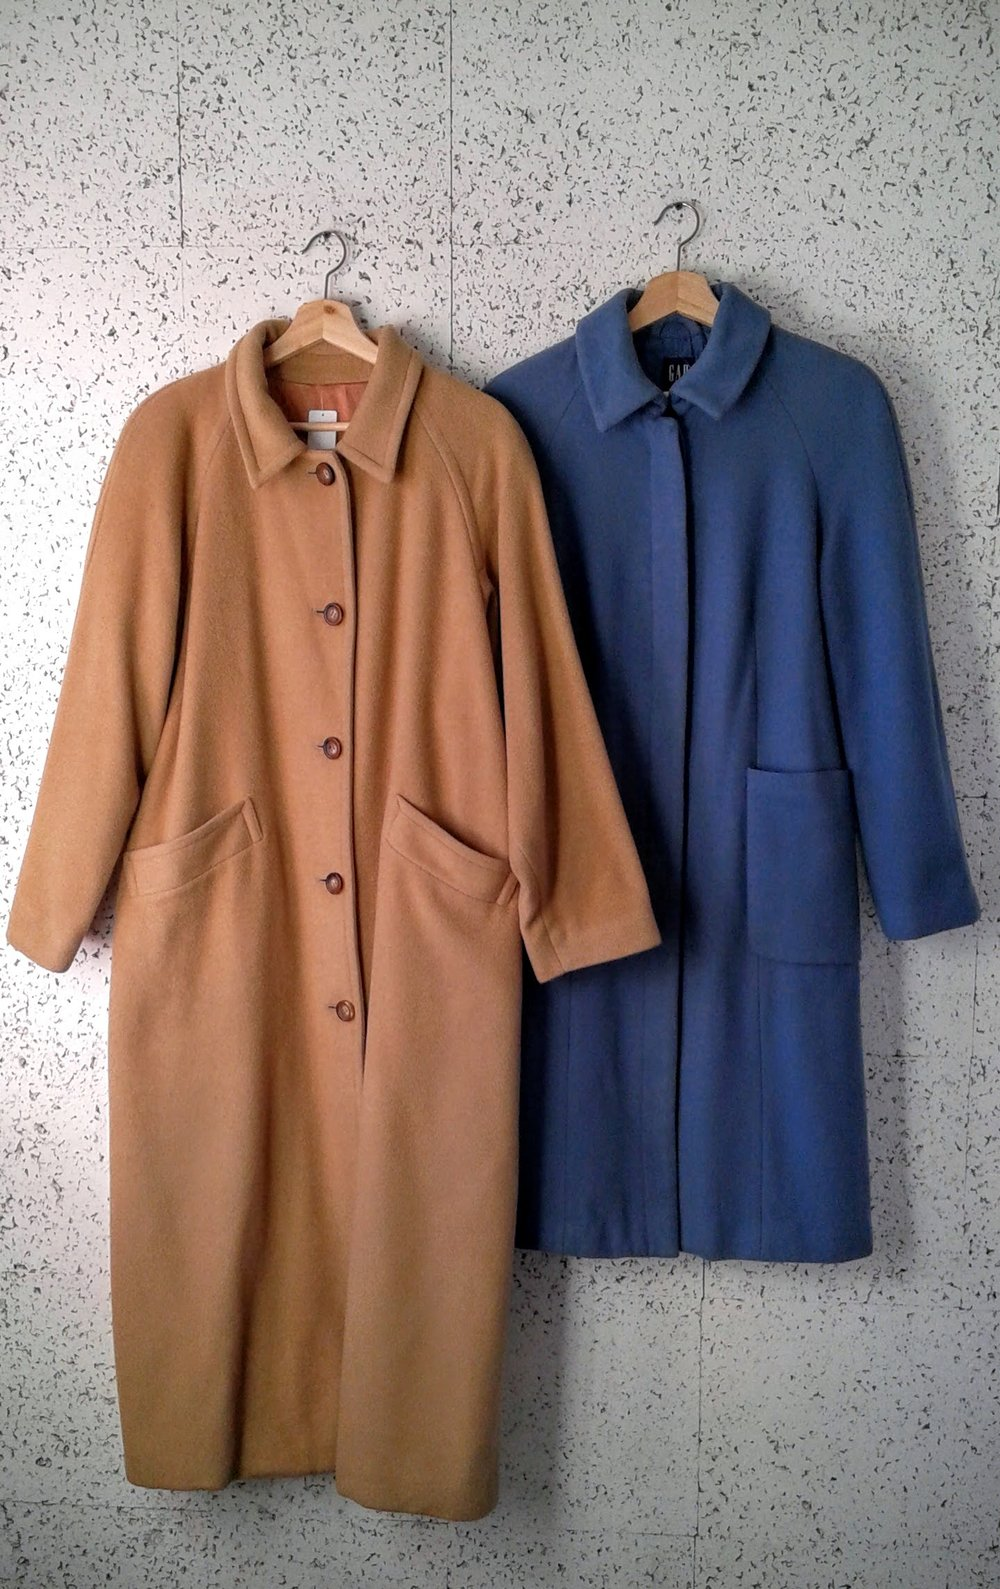 Camel coat, size M/L, $78; Gap coat, Size S, $58